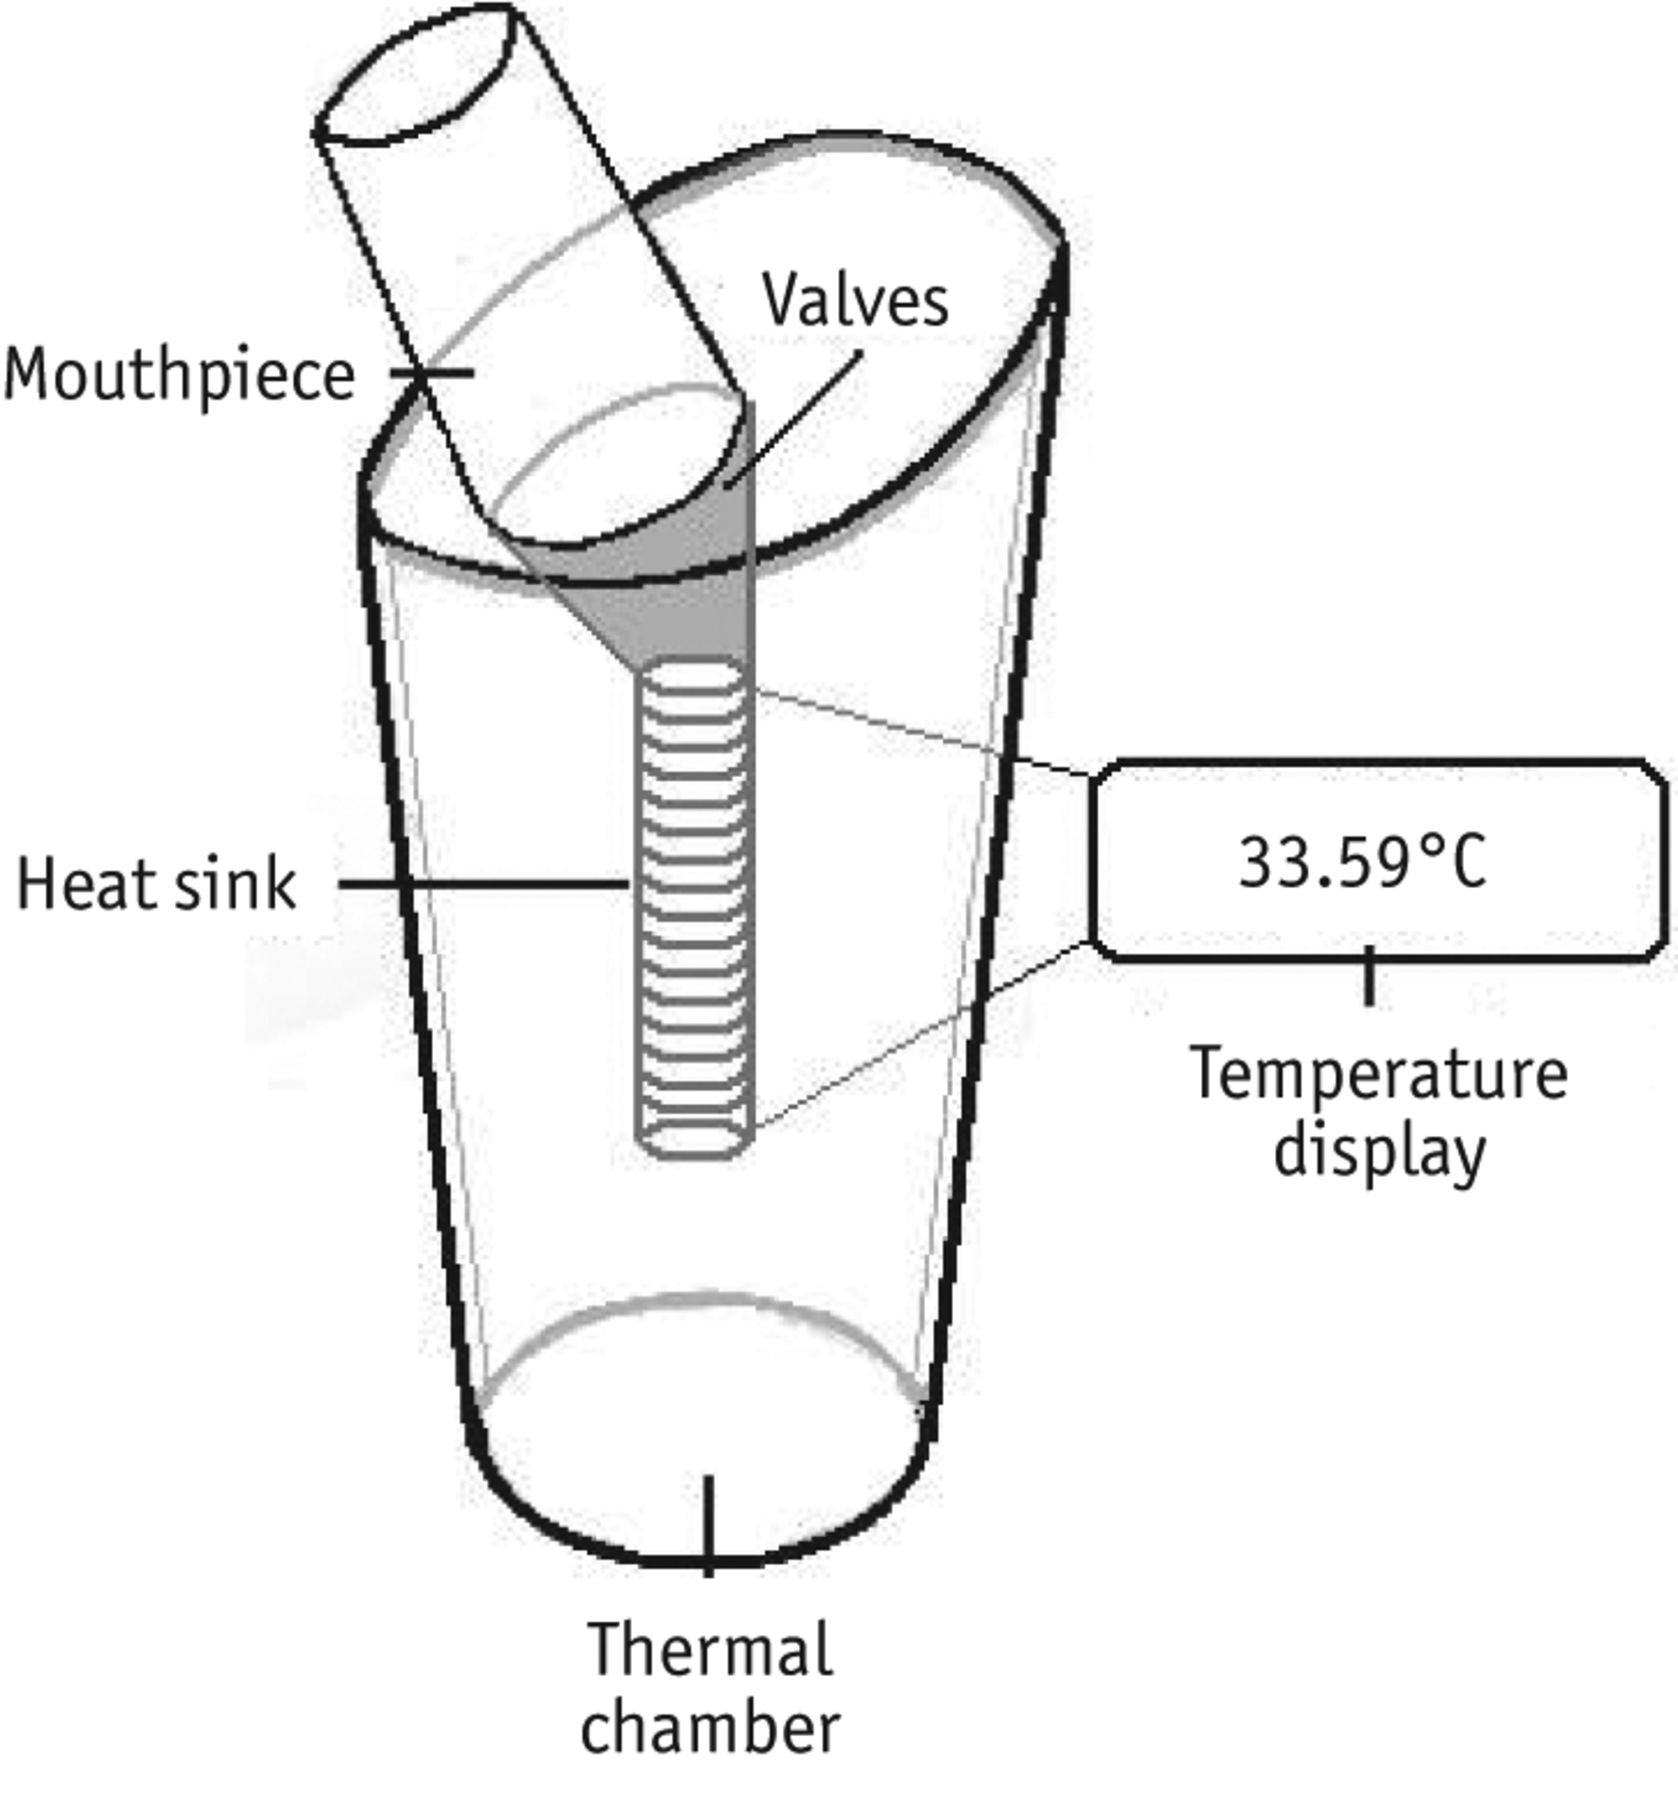 Measurement of exhaled breath temperature in science and